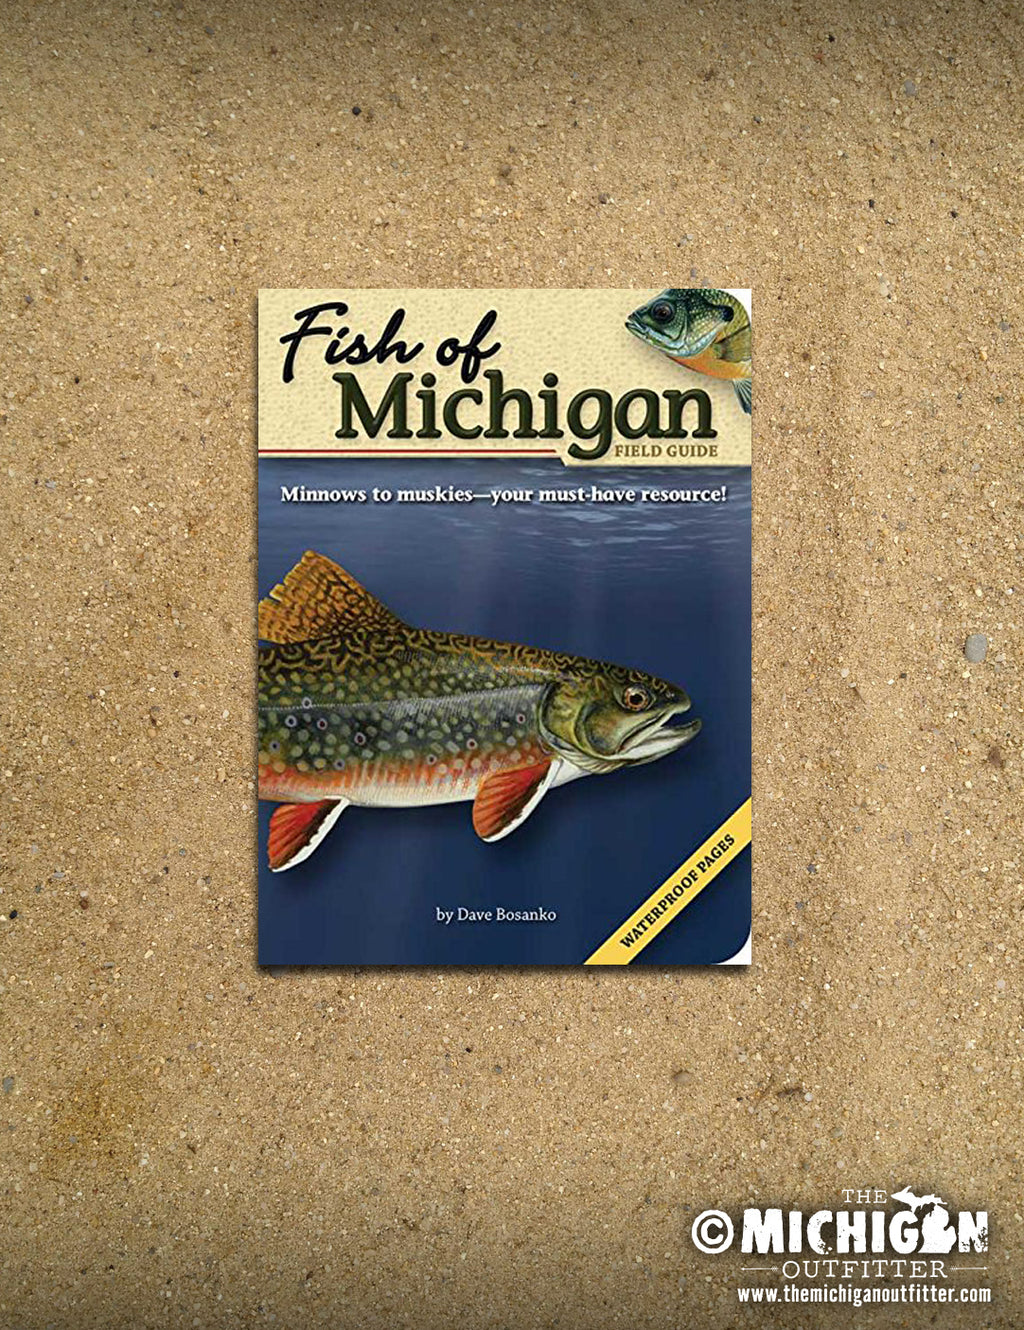 Fish of Michigan Feild Guide